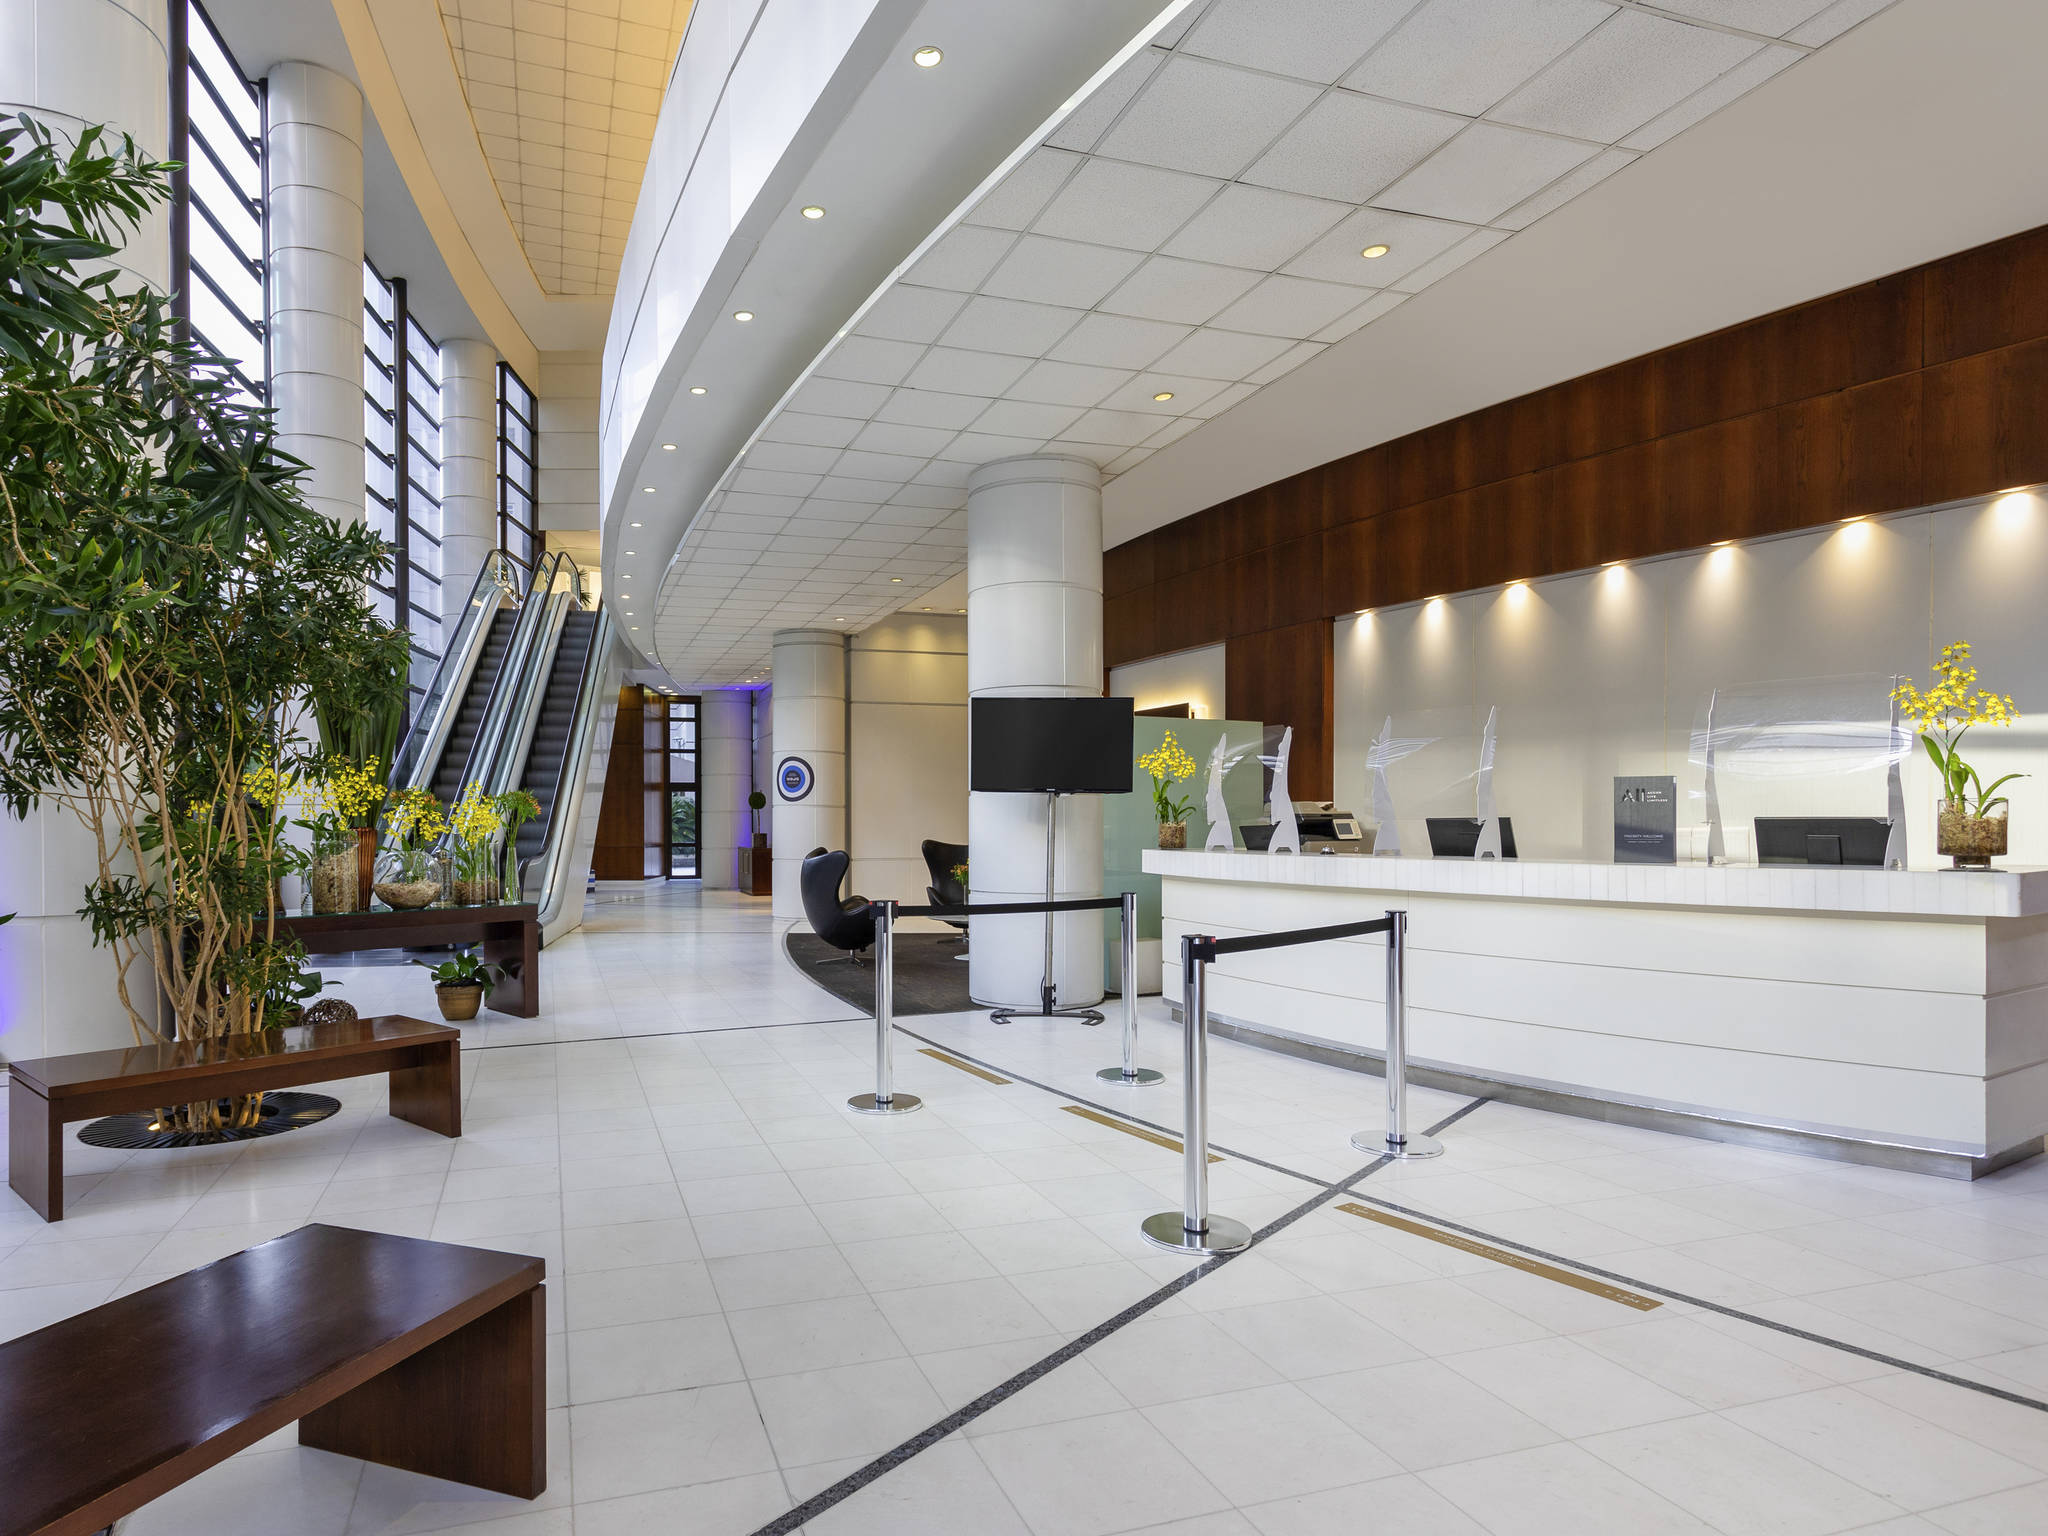 โรงแรม – Mercure Sao Paulo Grand Plaza Paulista